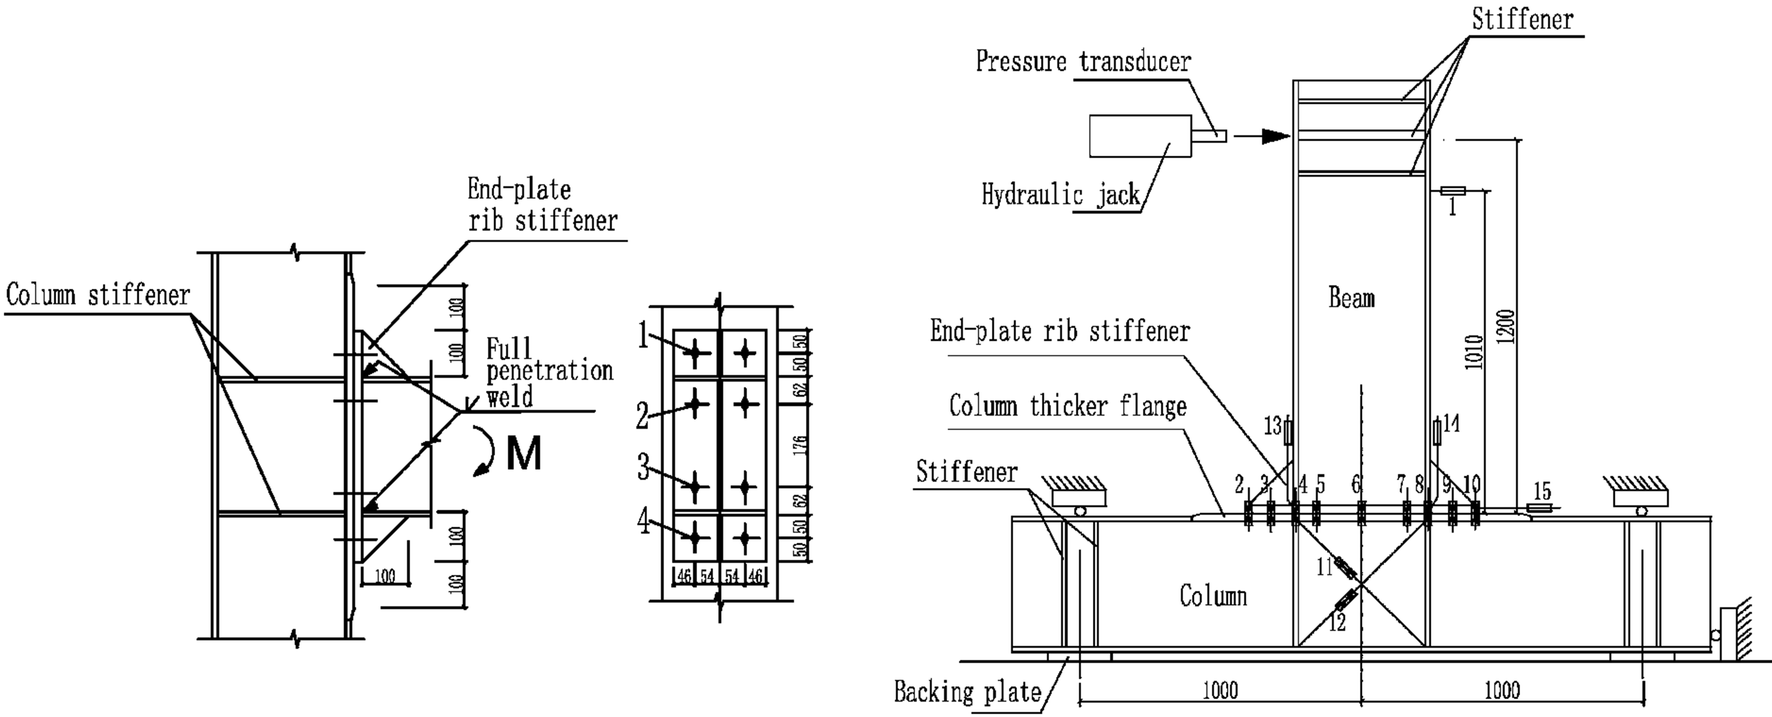 Evaluation of Friction Strength Loss in Endplate Moment